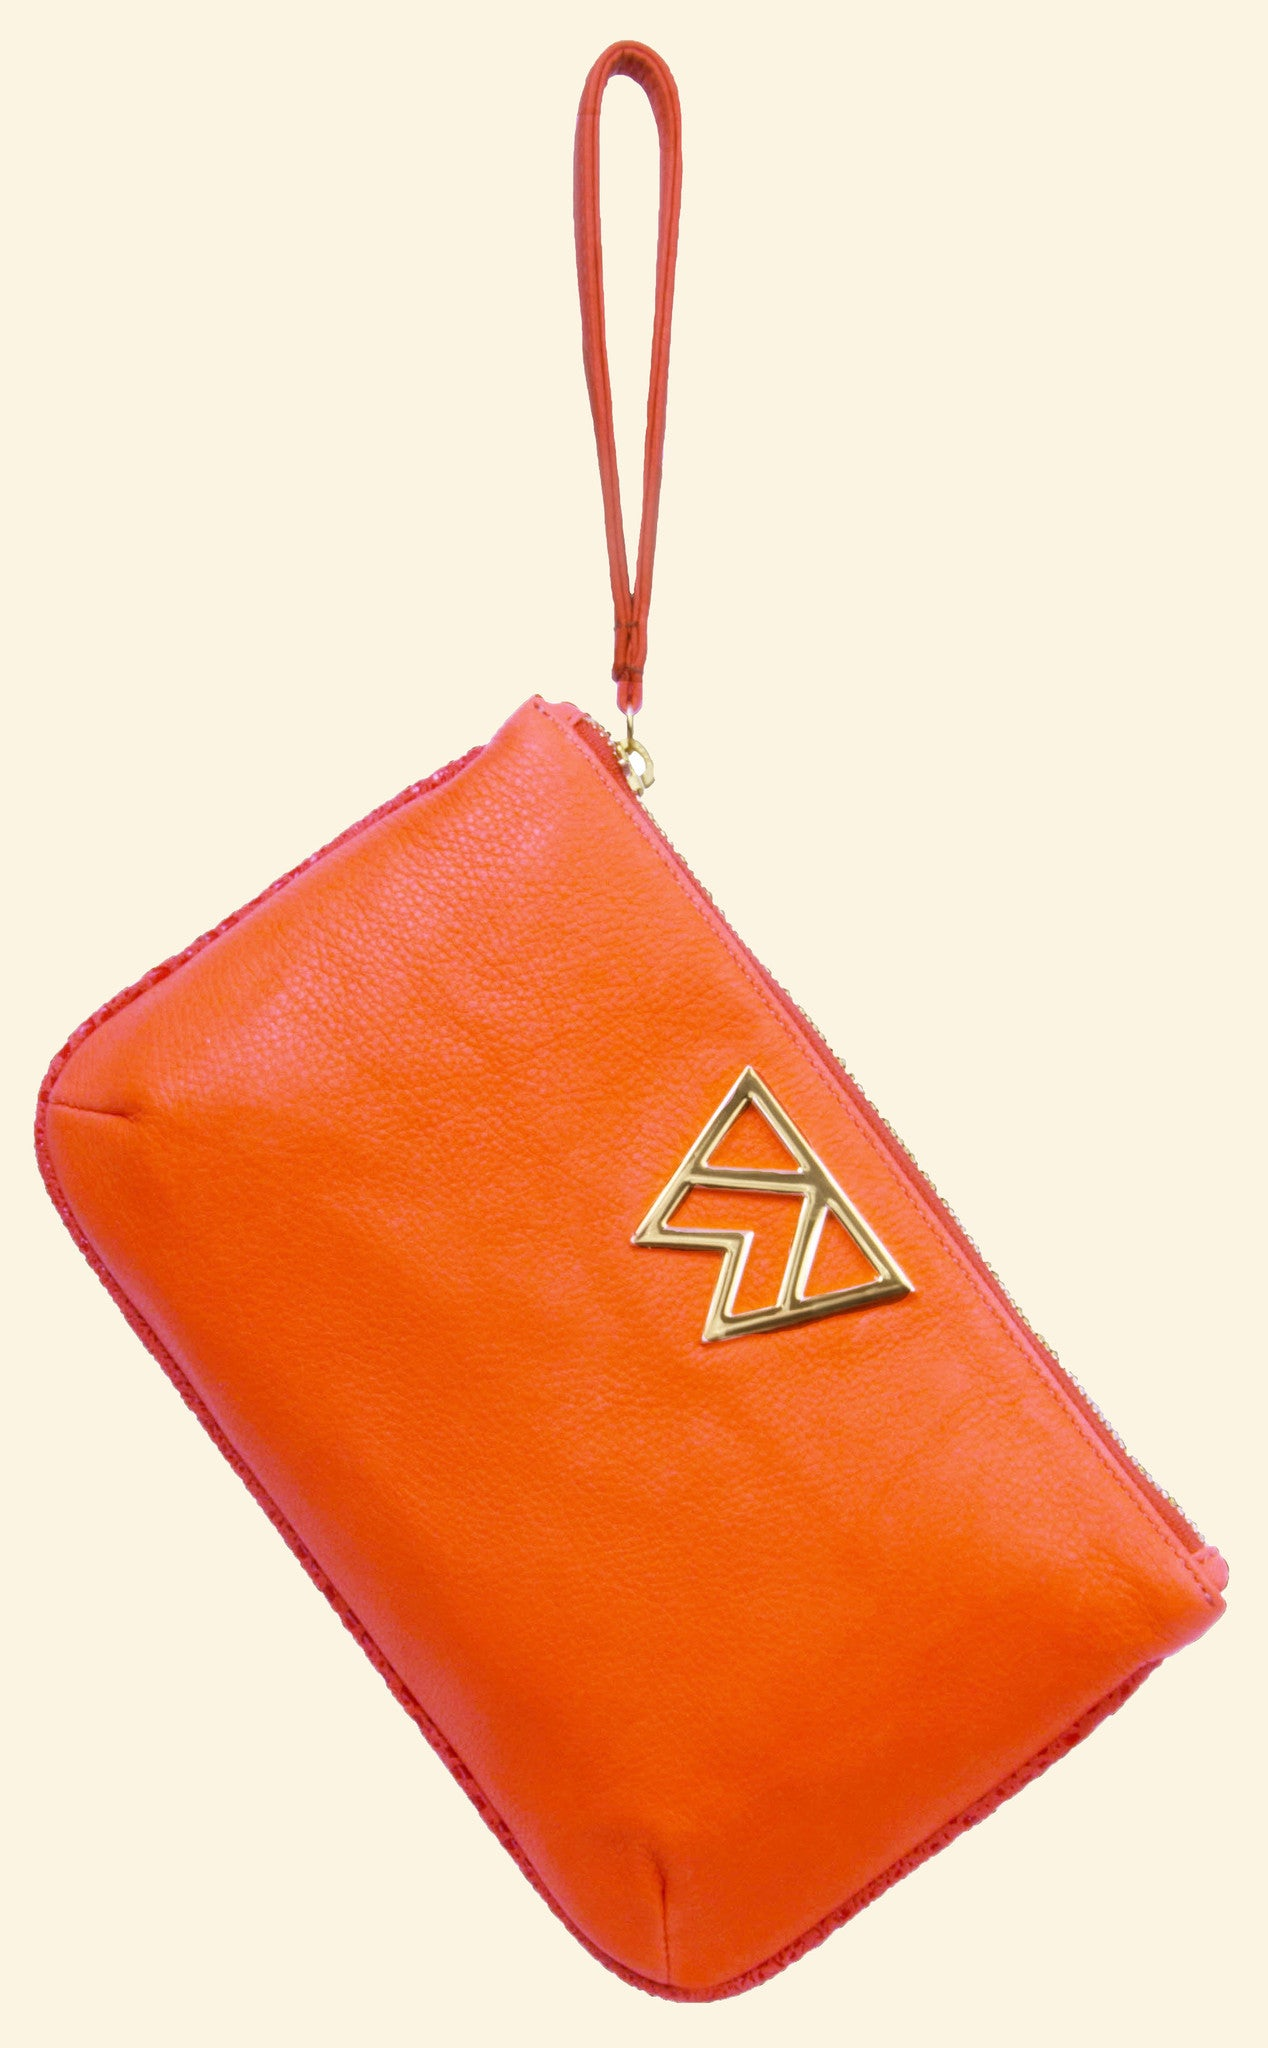 fde1bf864f9b Risky Biz Wristlet in Coral & Salmon with Coral Serpentine